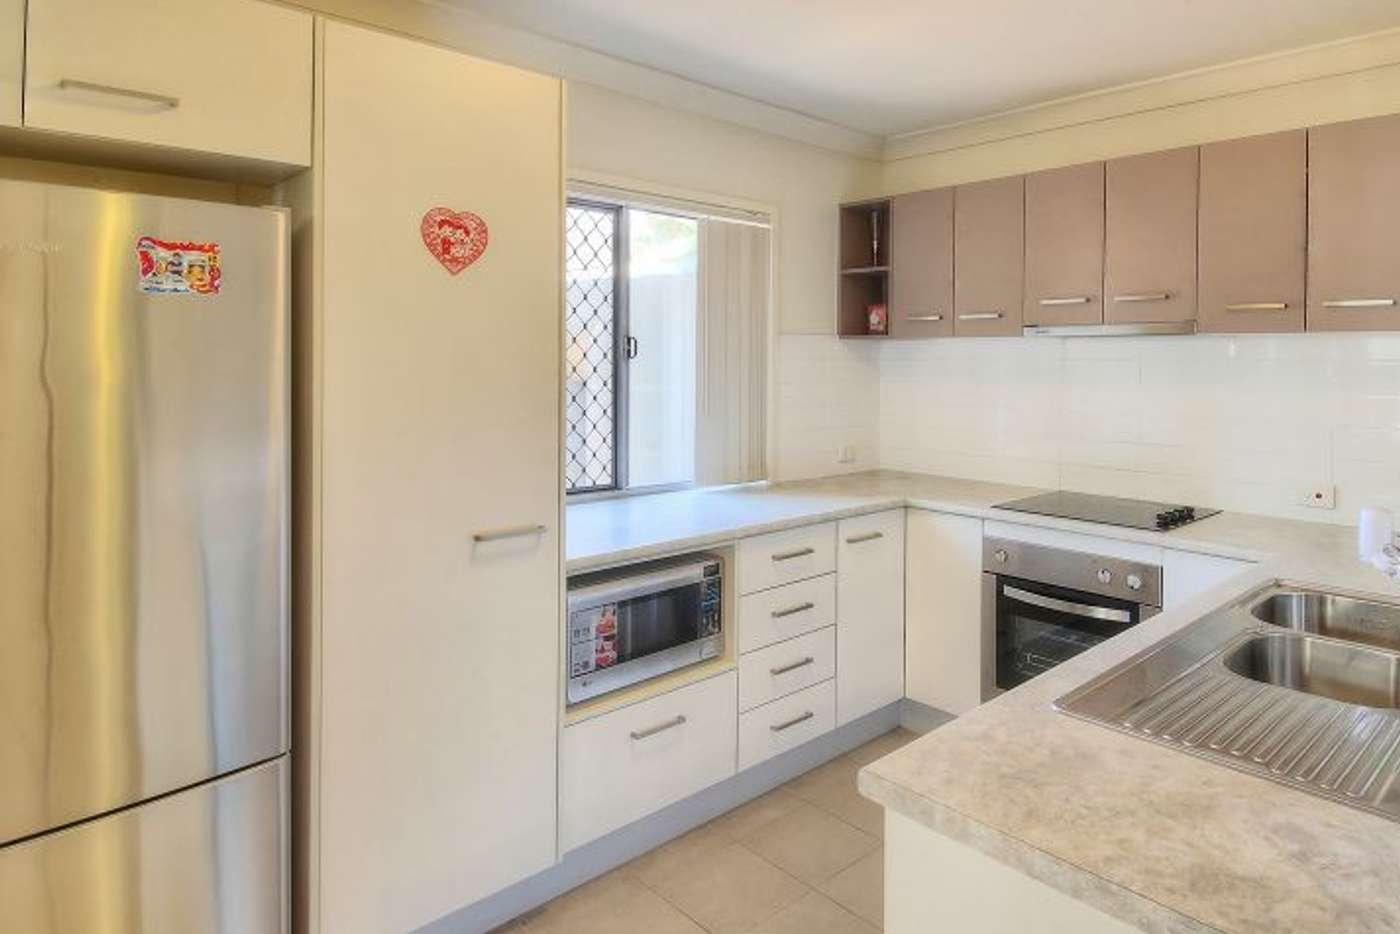 Sixth view of Homely house listing, 63/50 Perkins Street, Calamvale QLD 4116